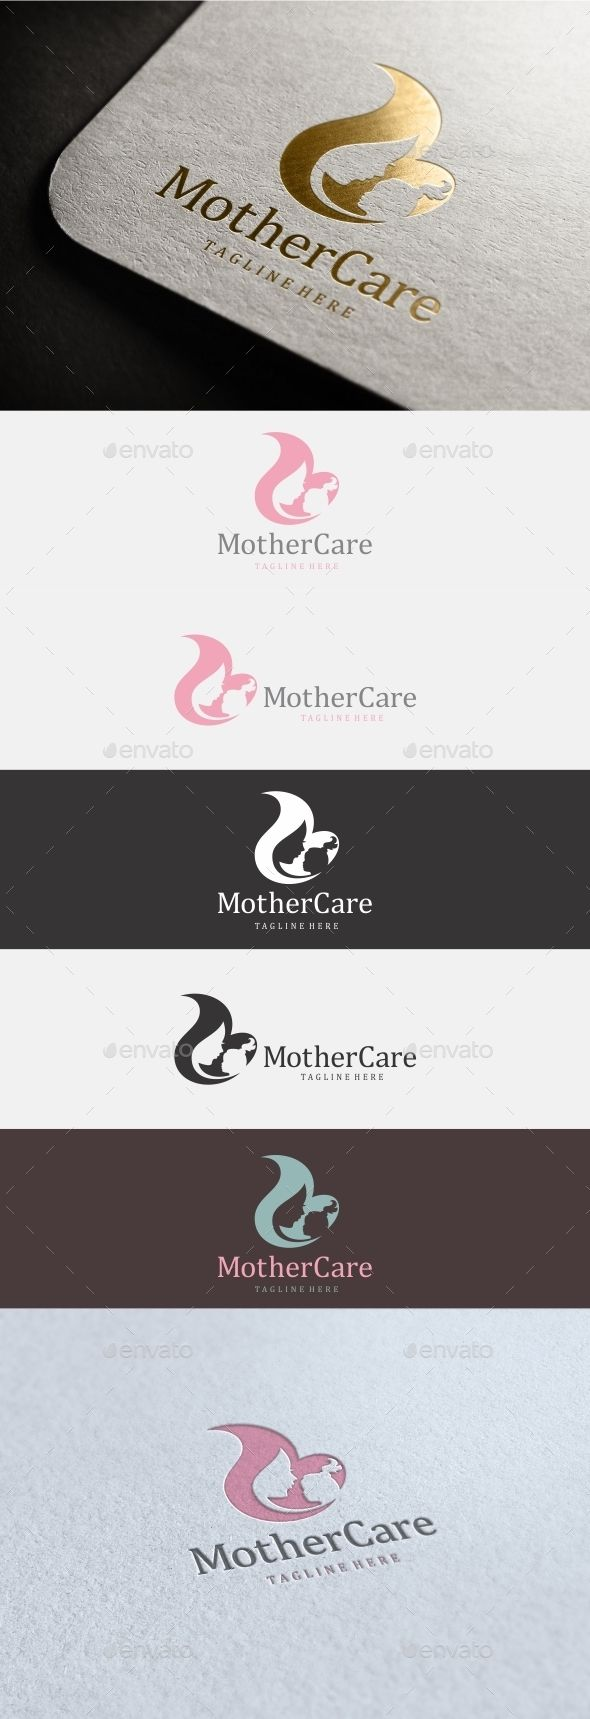 Mother Care Logo Design Template Vector #logotype Download it here: http://graphicriver.net/item/mother-care-logo/11891505?s_rank=1472?ref=nexion